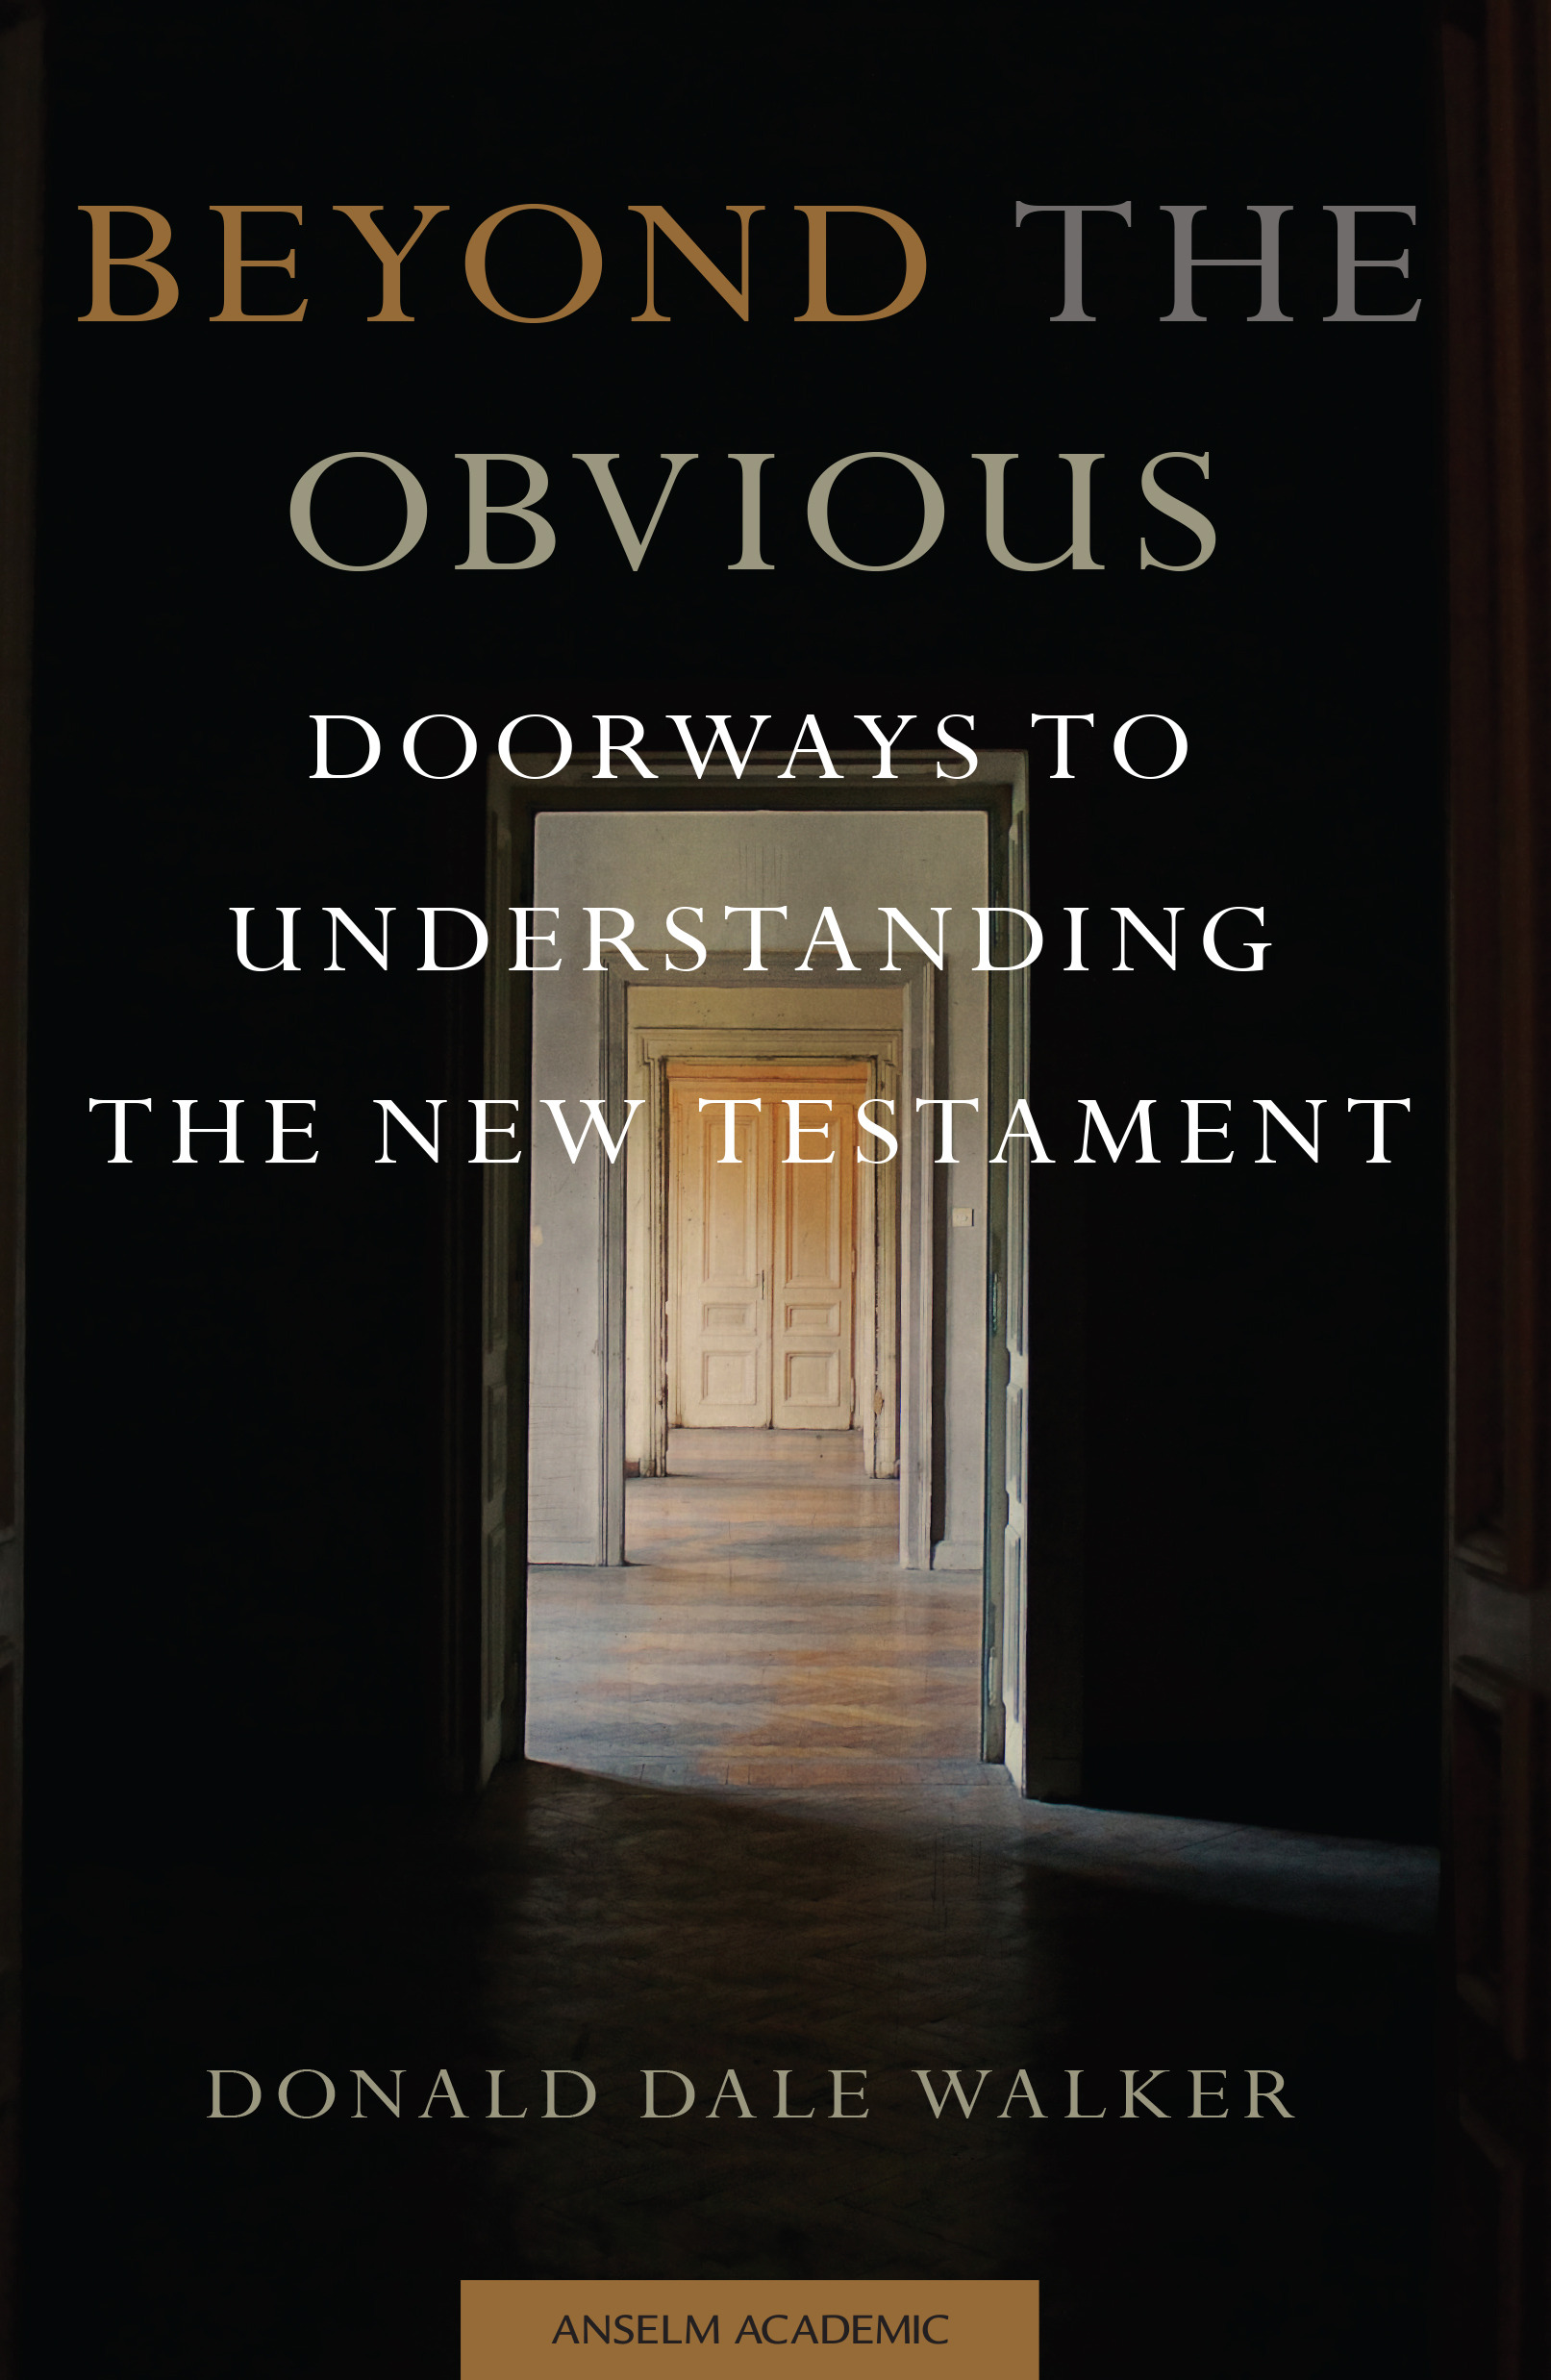 Beyond the Obvious: Doorways to Understanding the New Testament